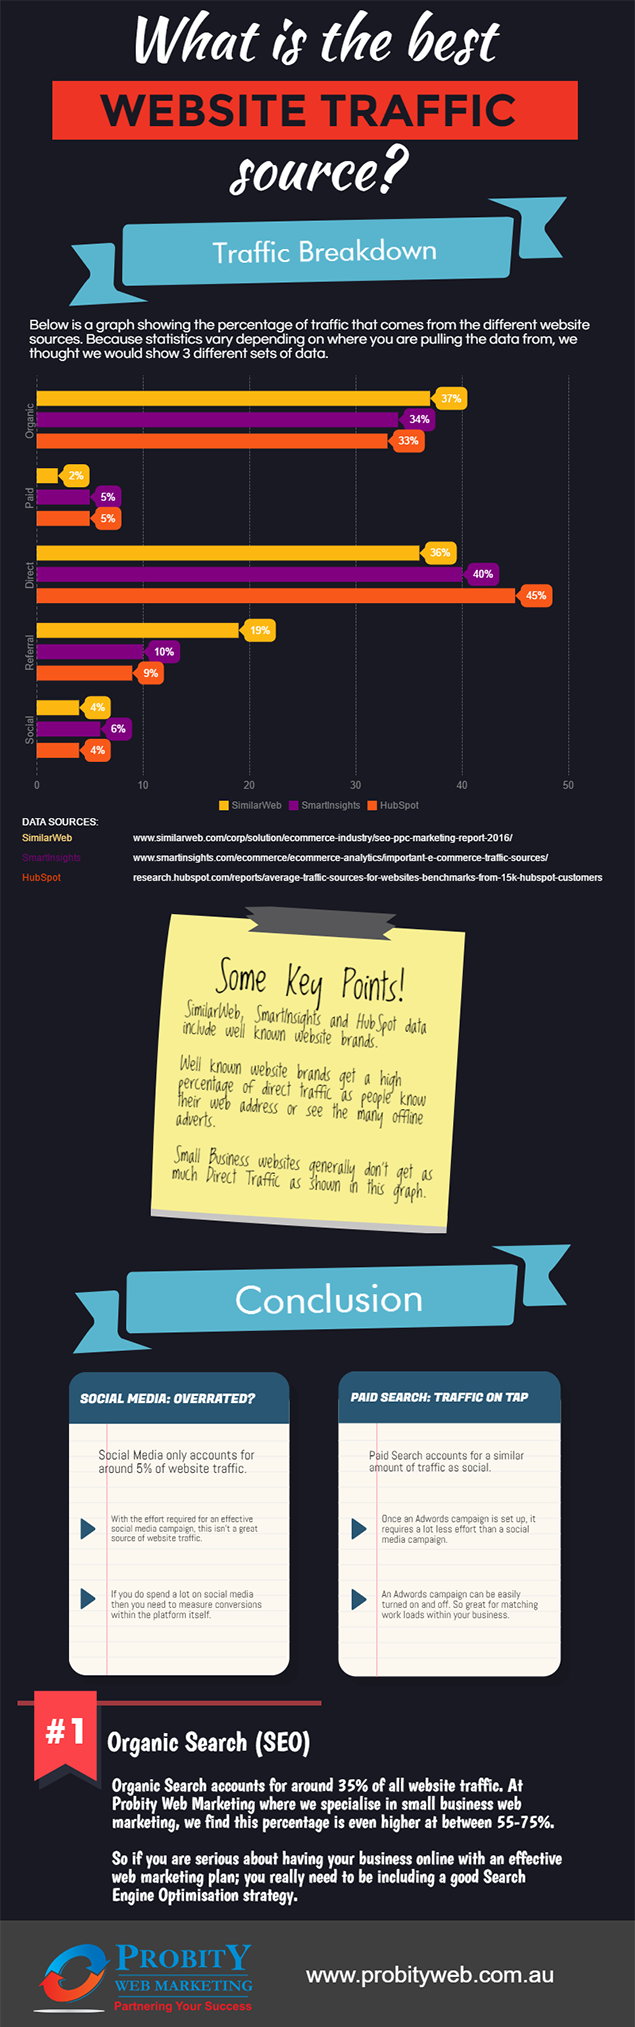 Website Traffic Sources Infographic